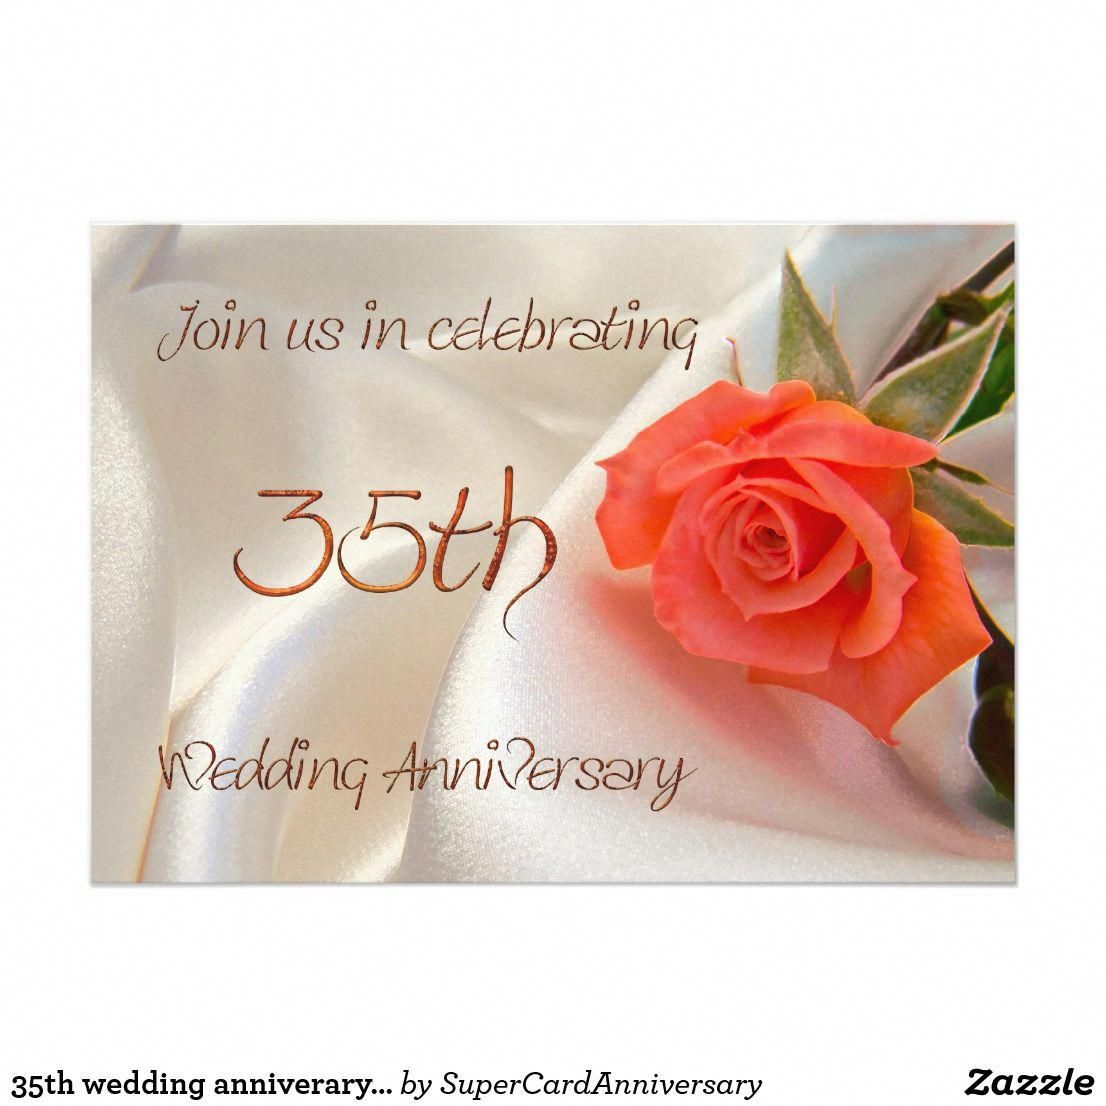 35th wedding anniverary party invitation | Wedding info | Pinterest ...